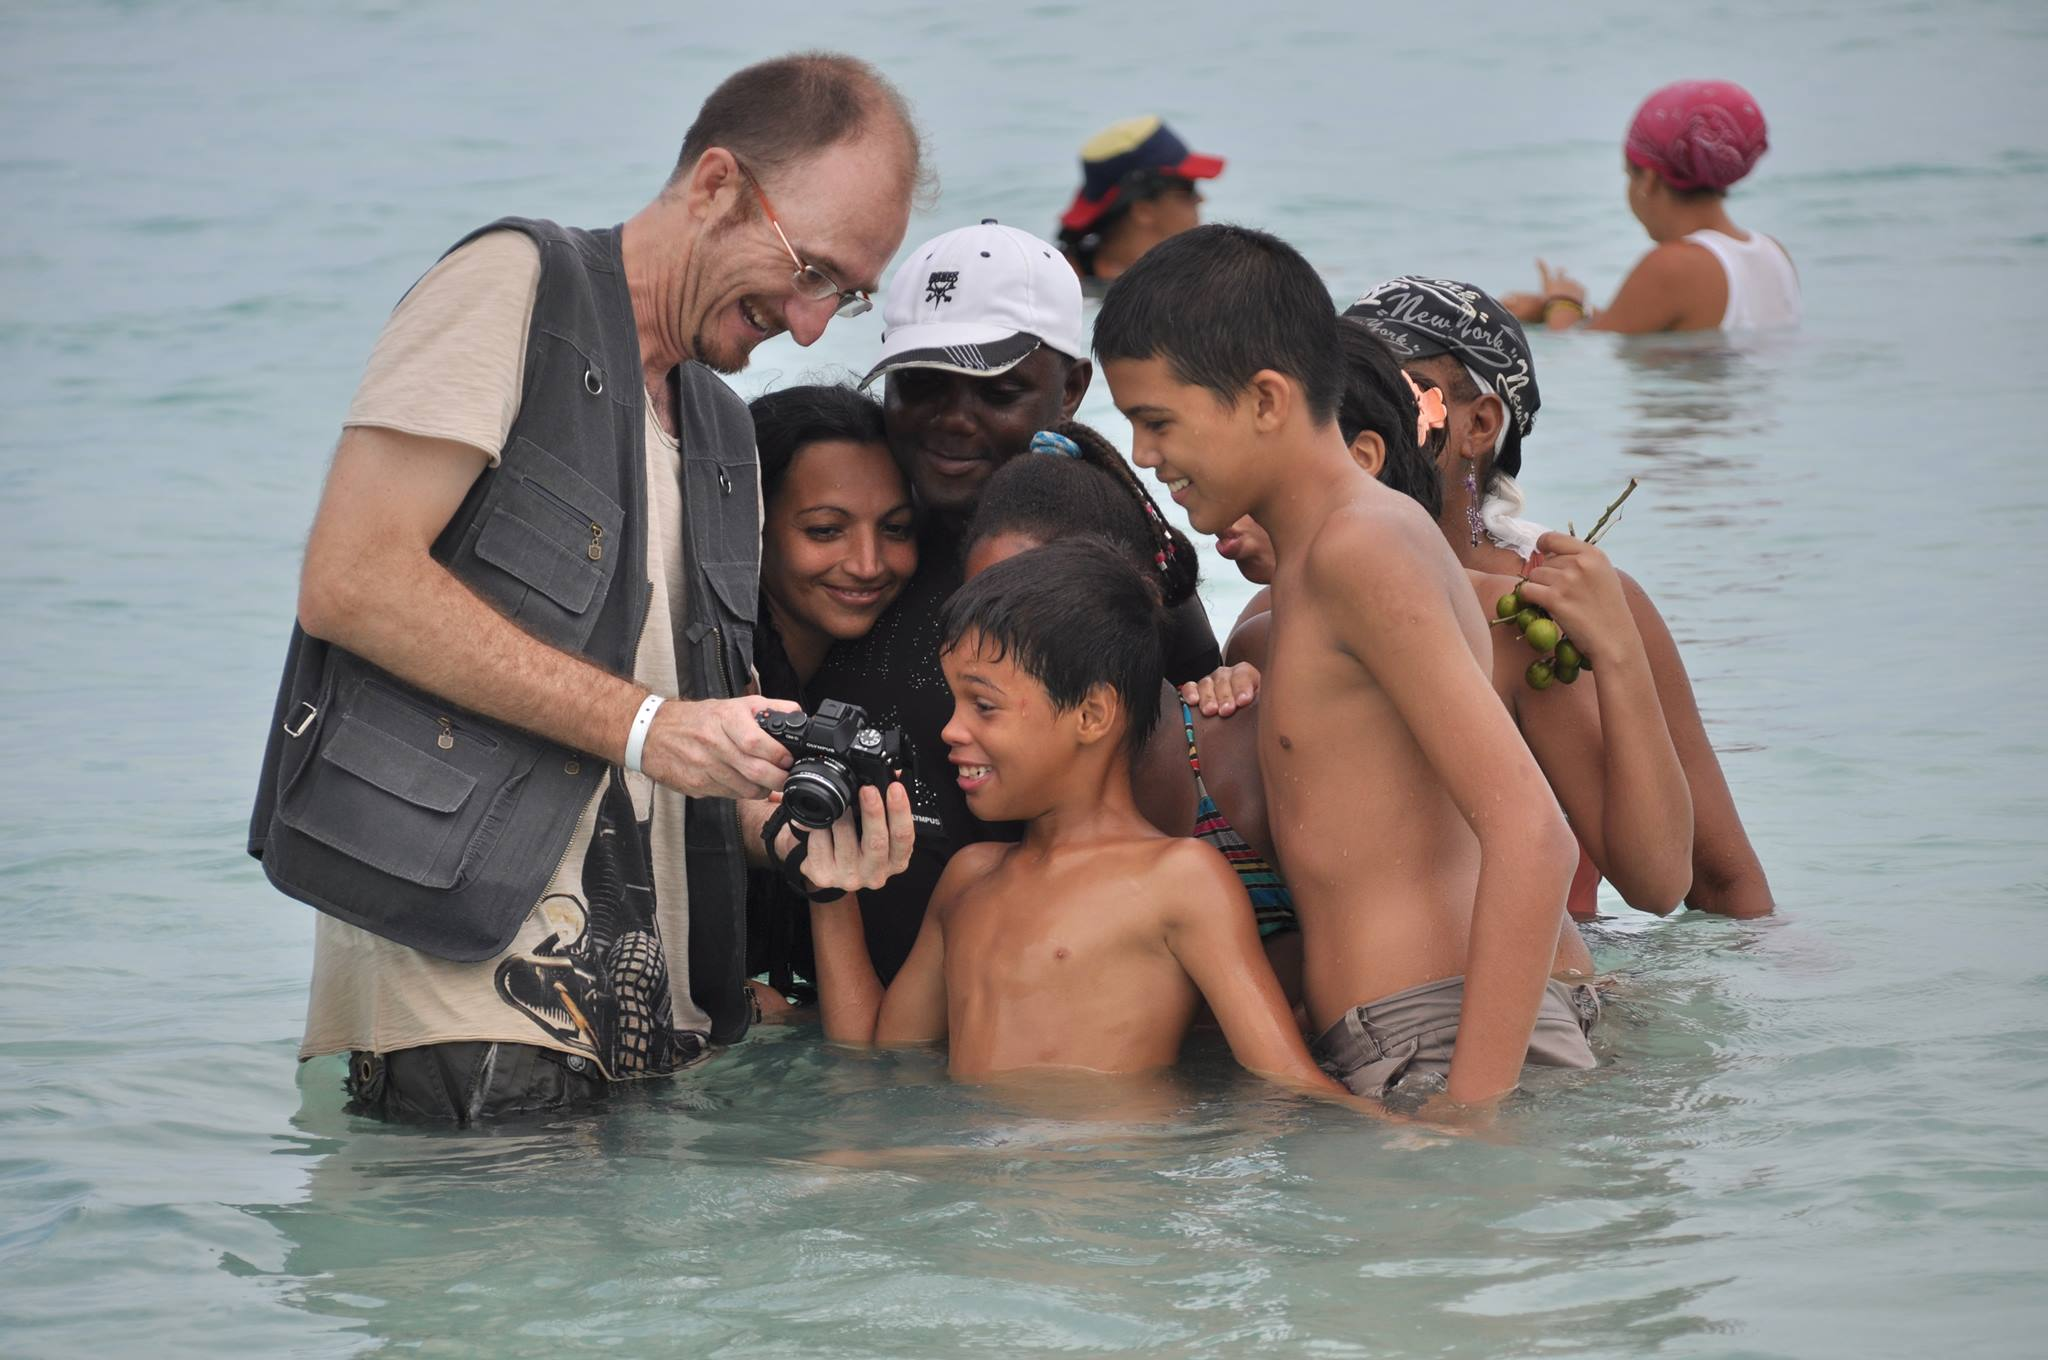 showing images into the water on the beach in my photo tours and workshops of photography in Cuba